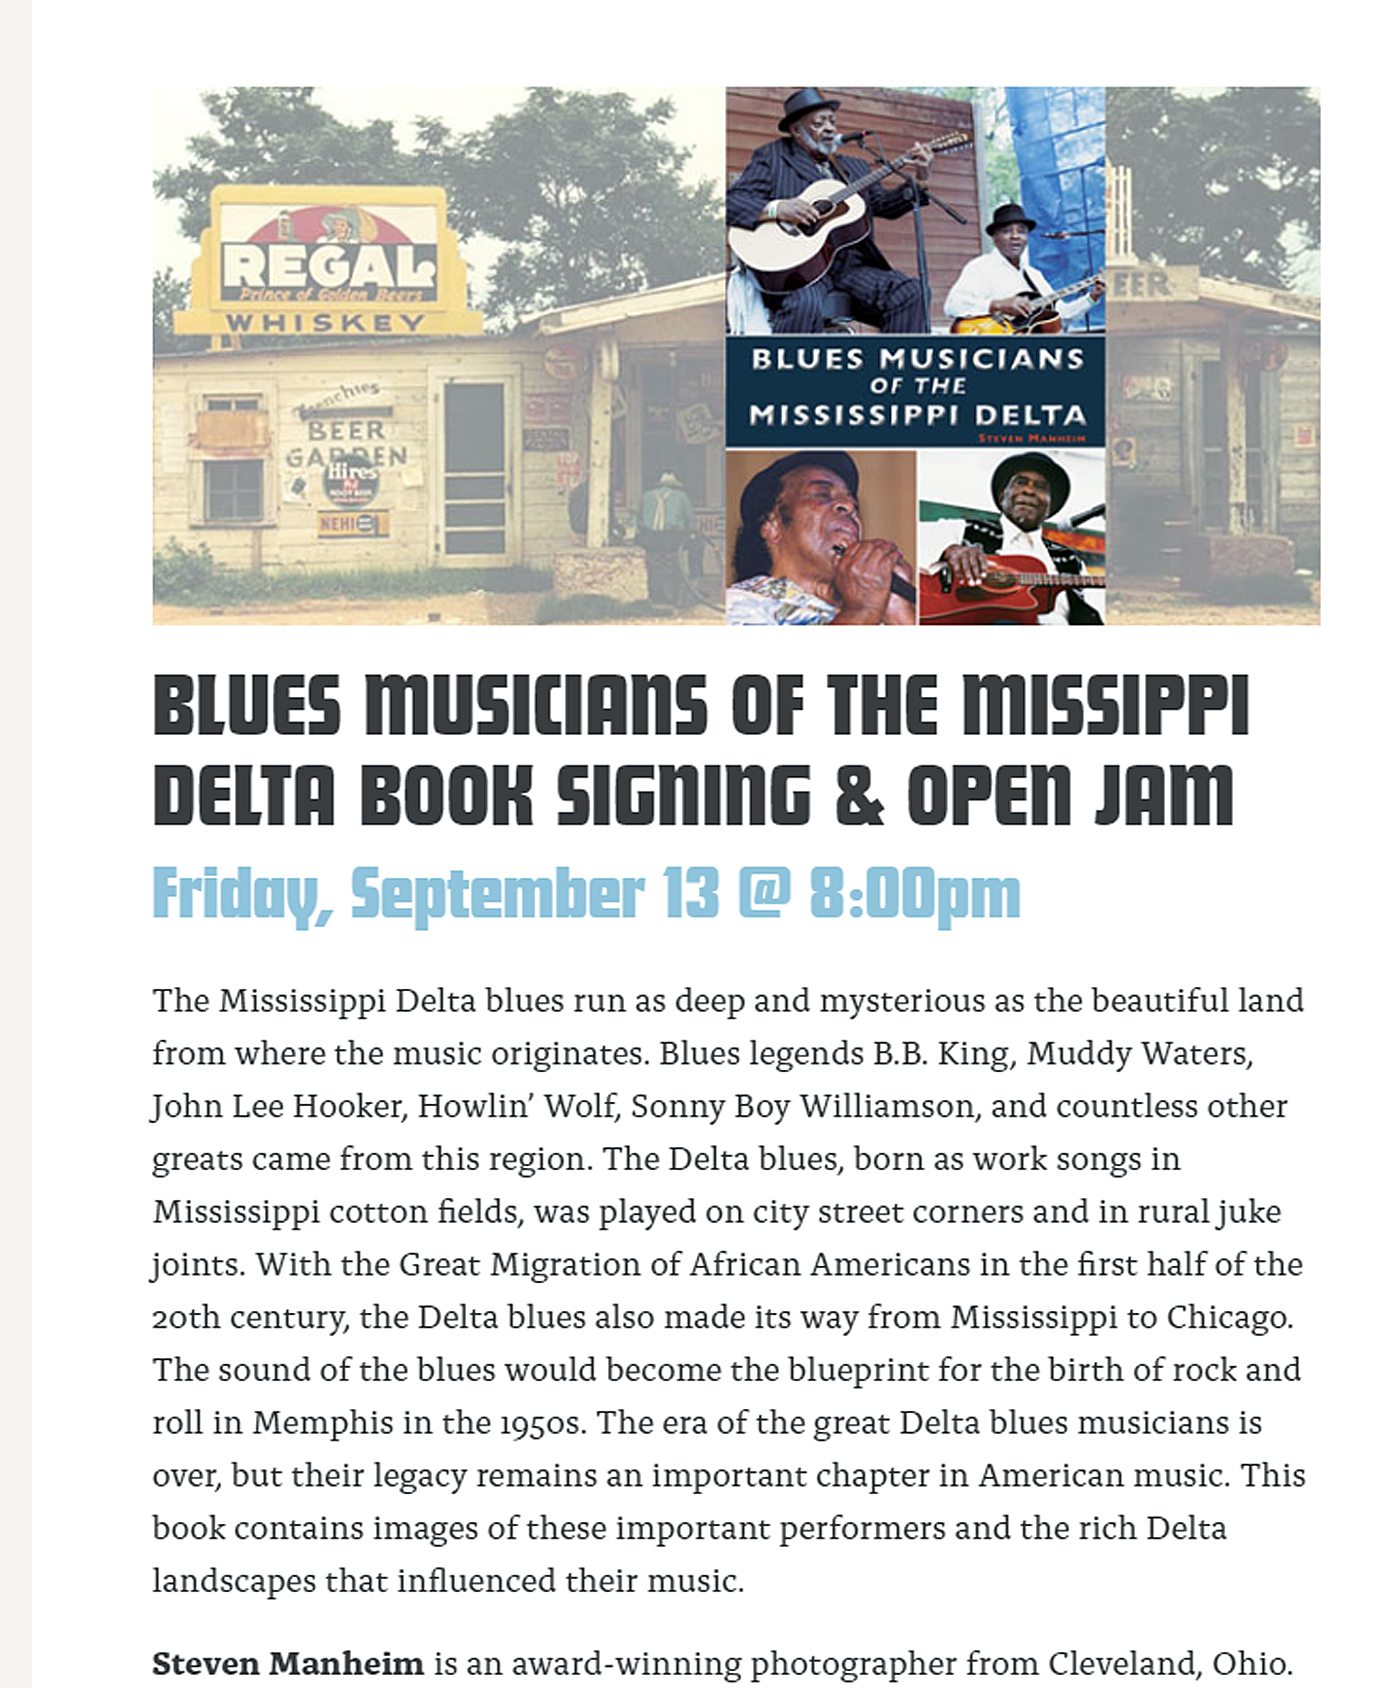 https://www.visiblevoicebooks.com/events/blues-musicians-of-the-missippi-delta-book-signing-open-jam/